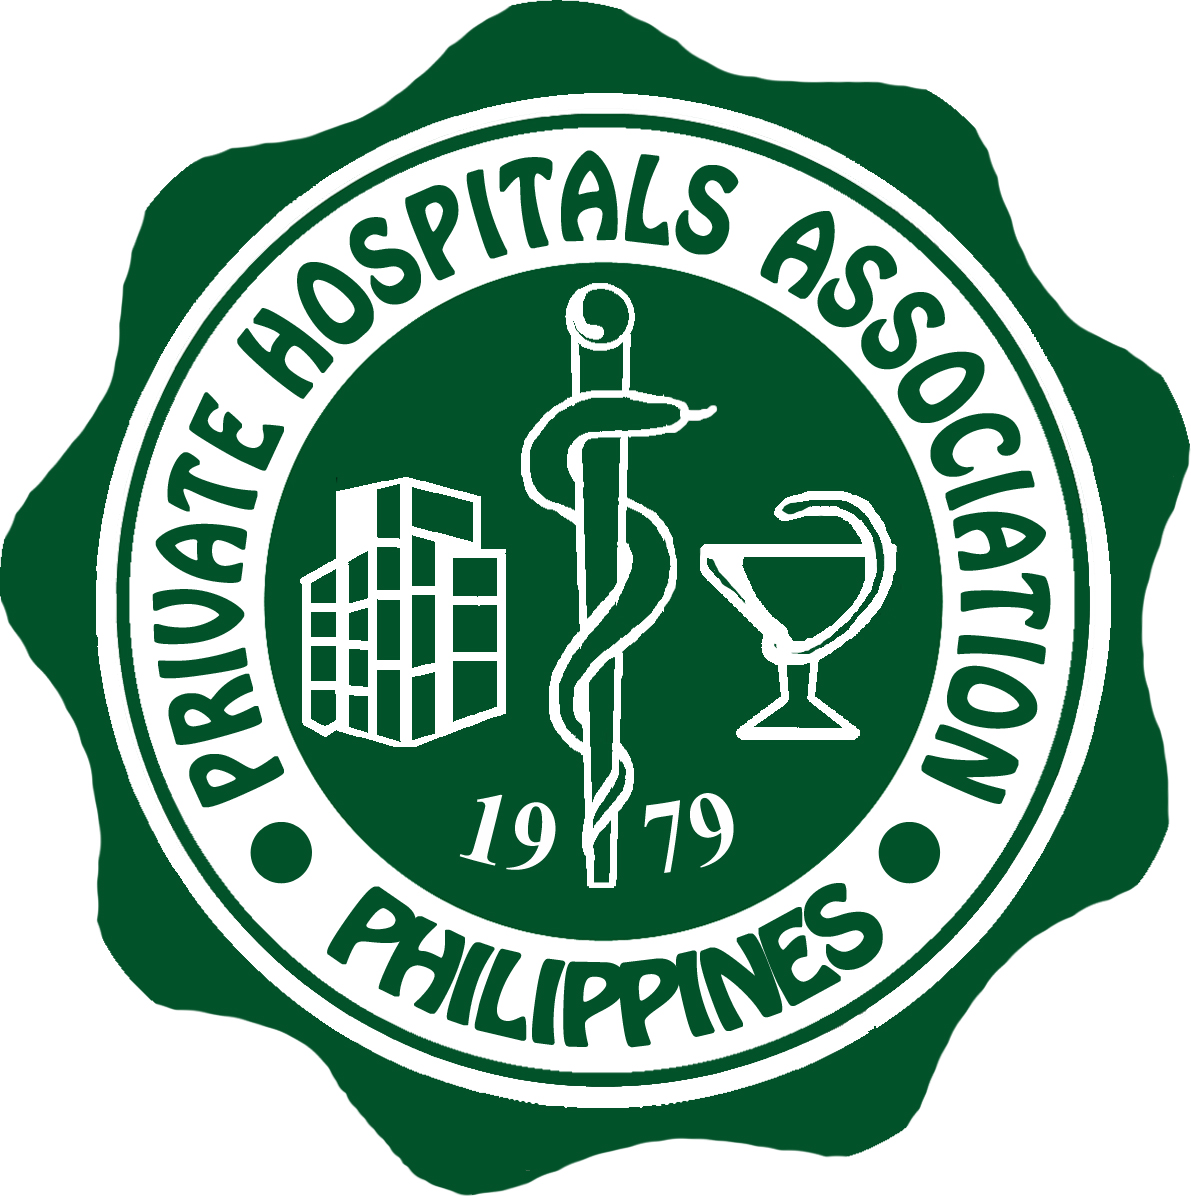 PRIVATE HOSPITALS ASSOCIATION OF THE PHILIPPINES, INC. (PHAPi)